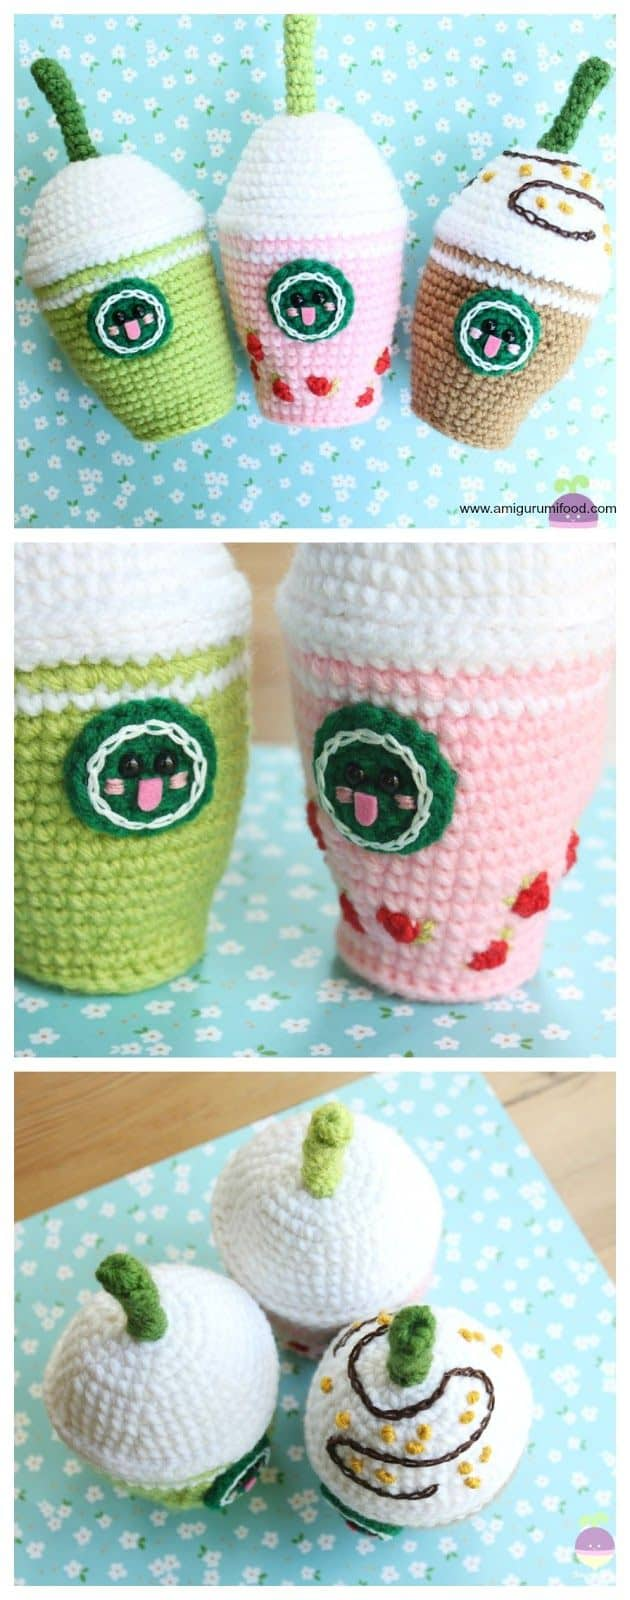 Crocheted frapaccinos